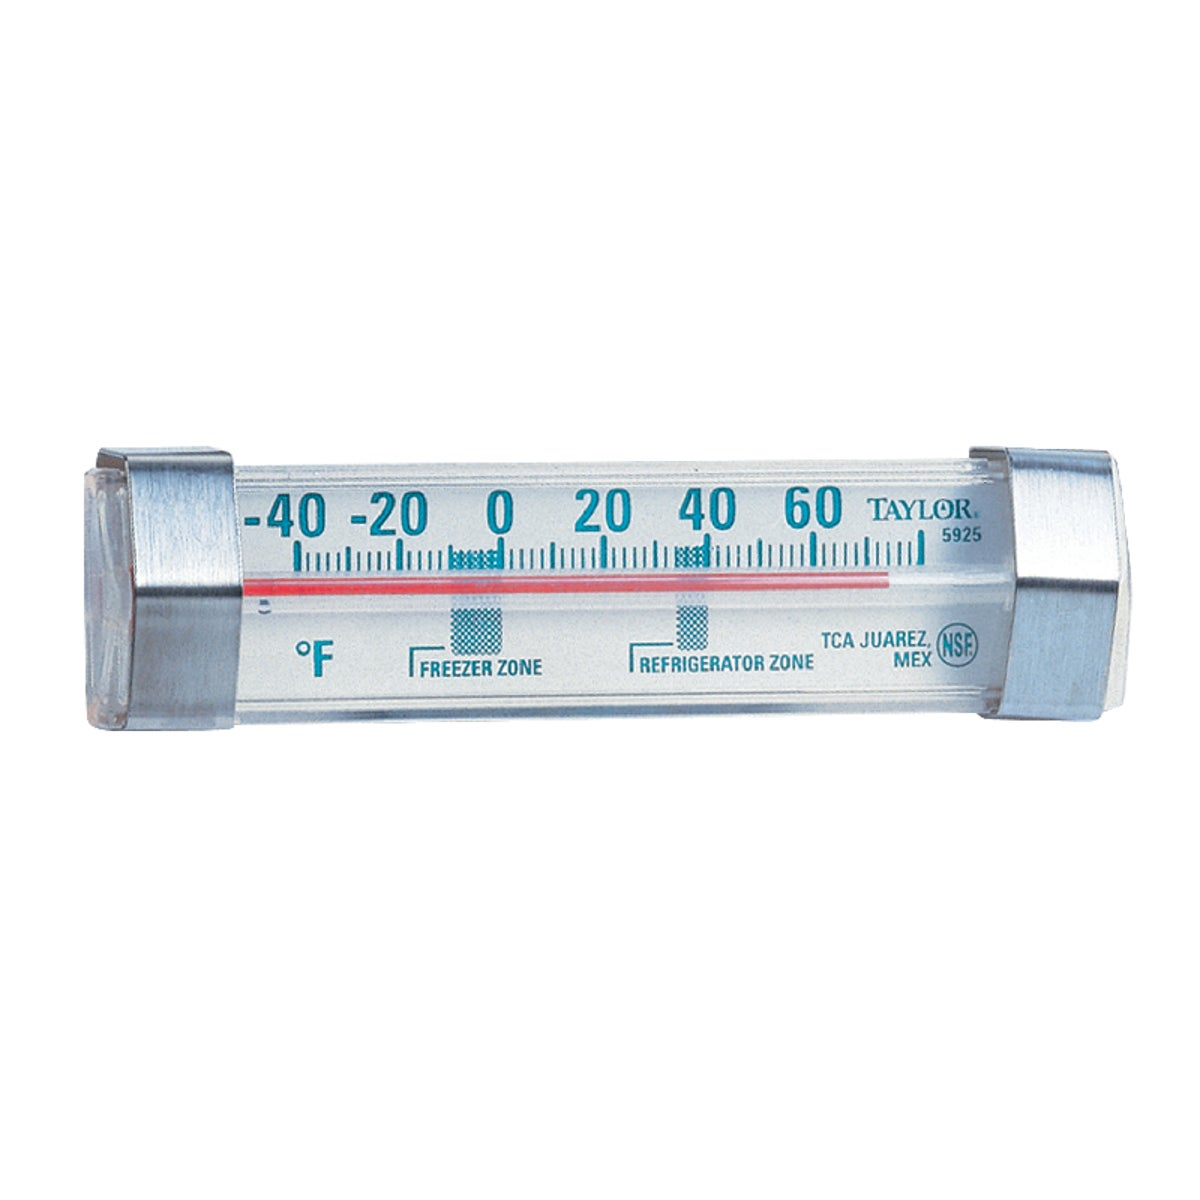 REFRIG/FRZR THERMOMETER - 5925N by Taylor Precision